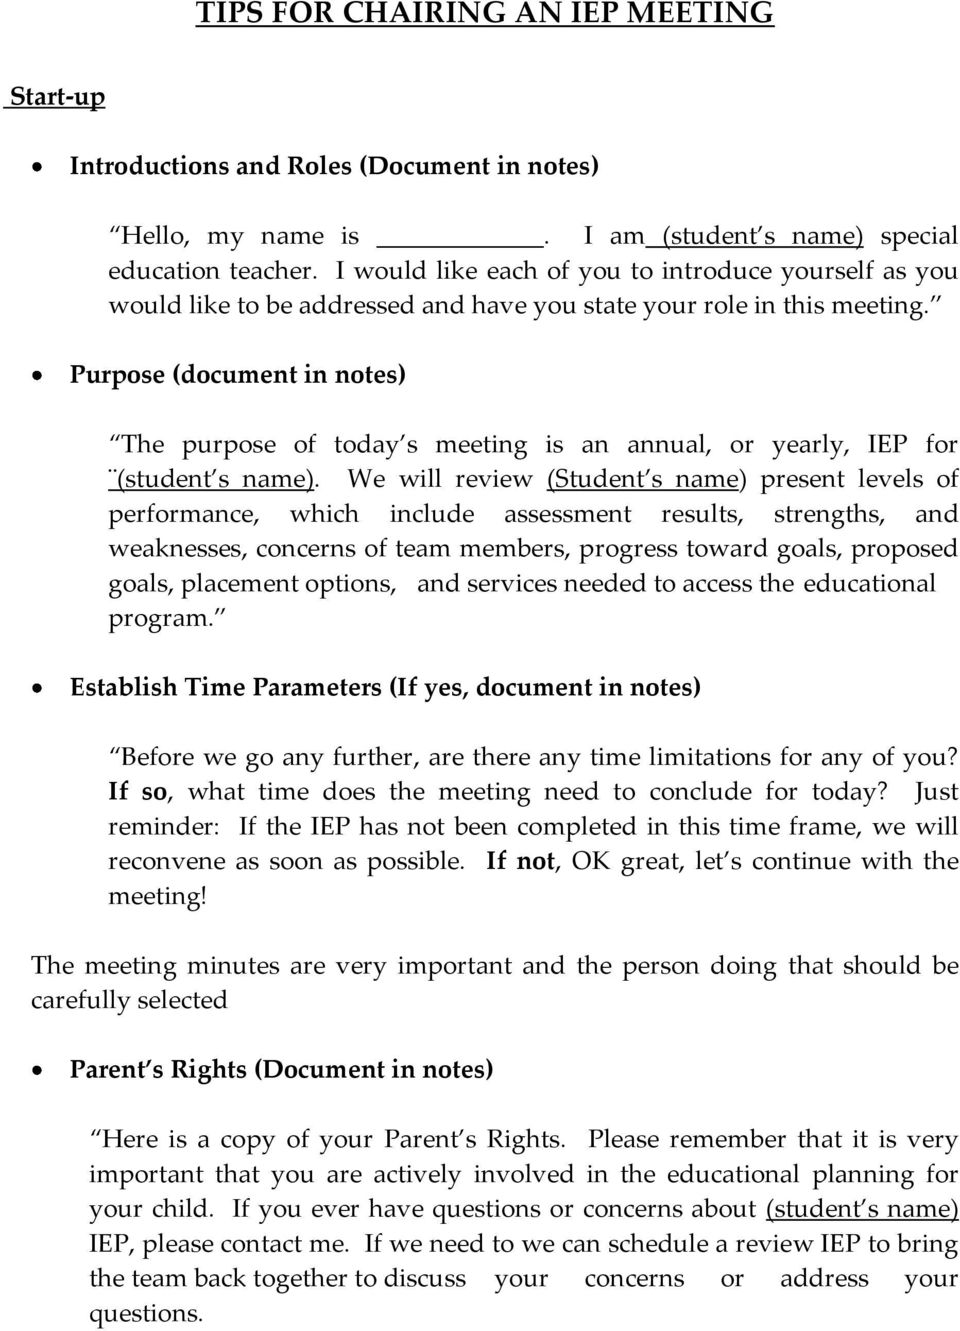 Tips For Chairing An Iep Meeting Pdf